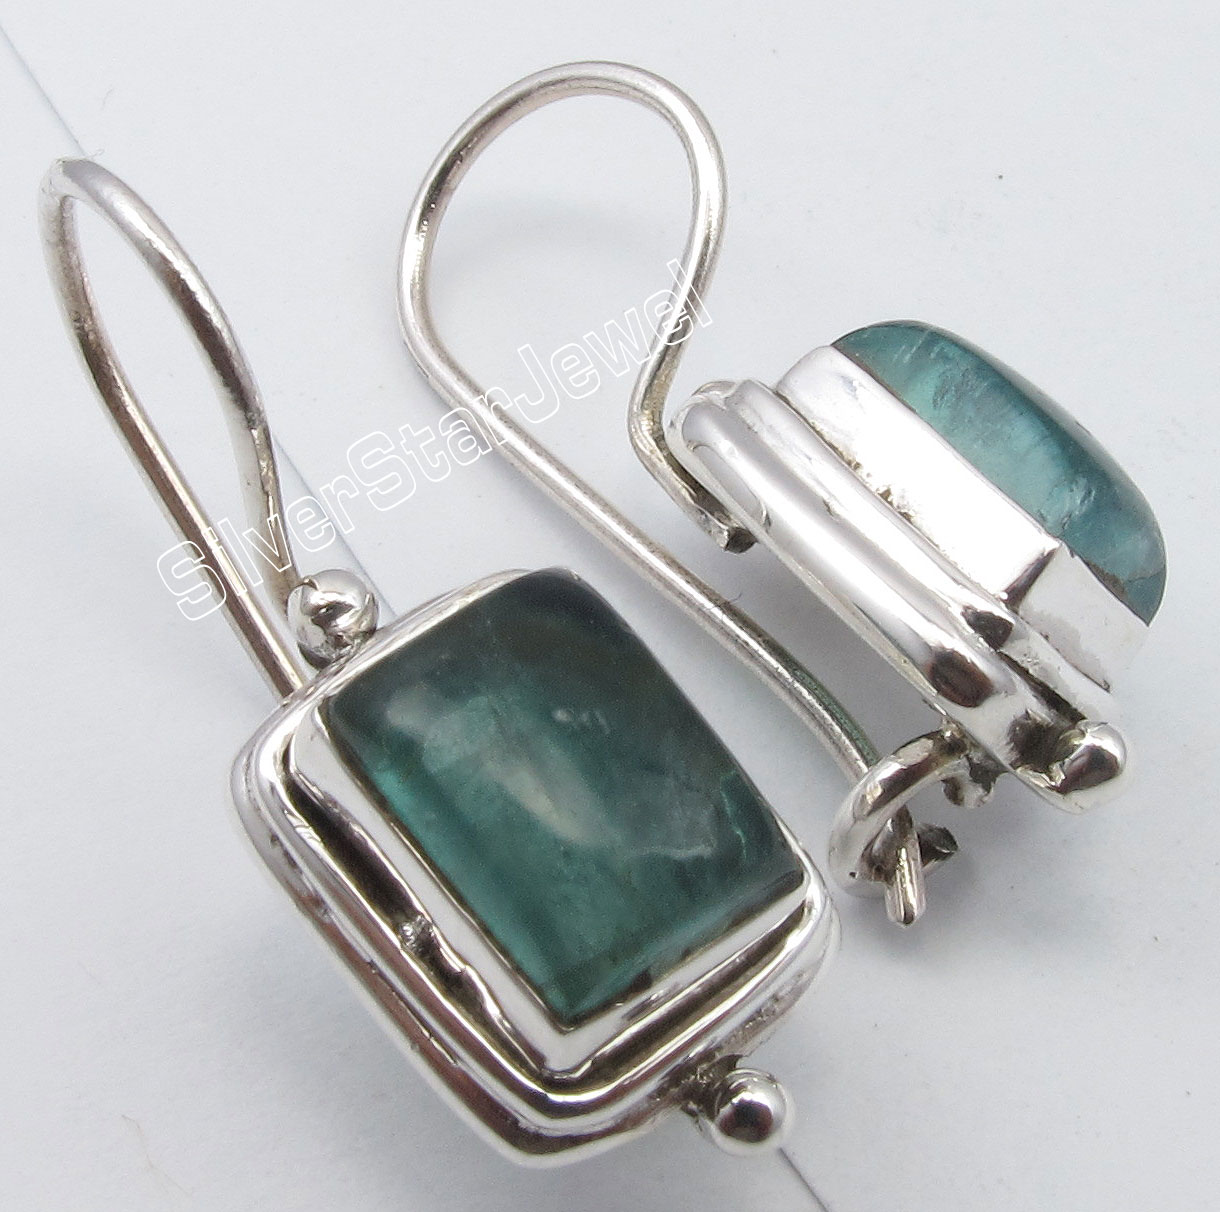 Chanti International . Solid Silver Rare GREEN APATITE Fix Hook Earrings 1 inches BIRTHDAY PRESENT